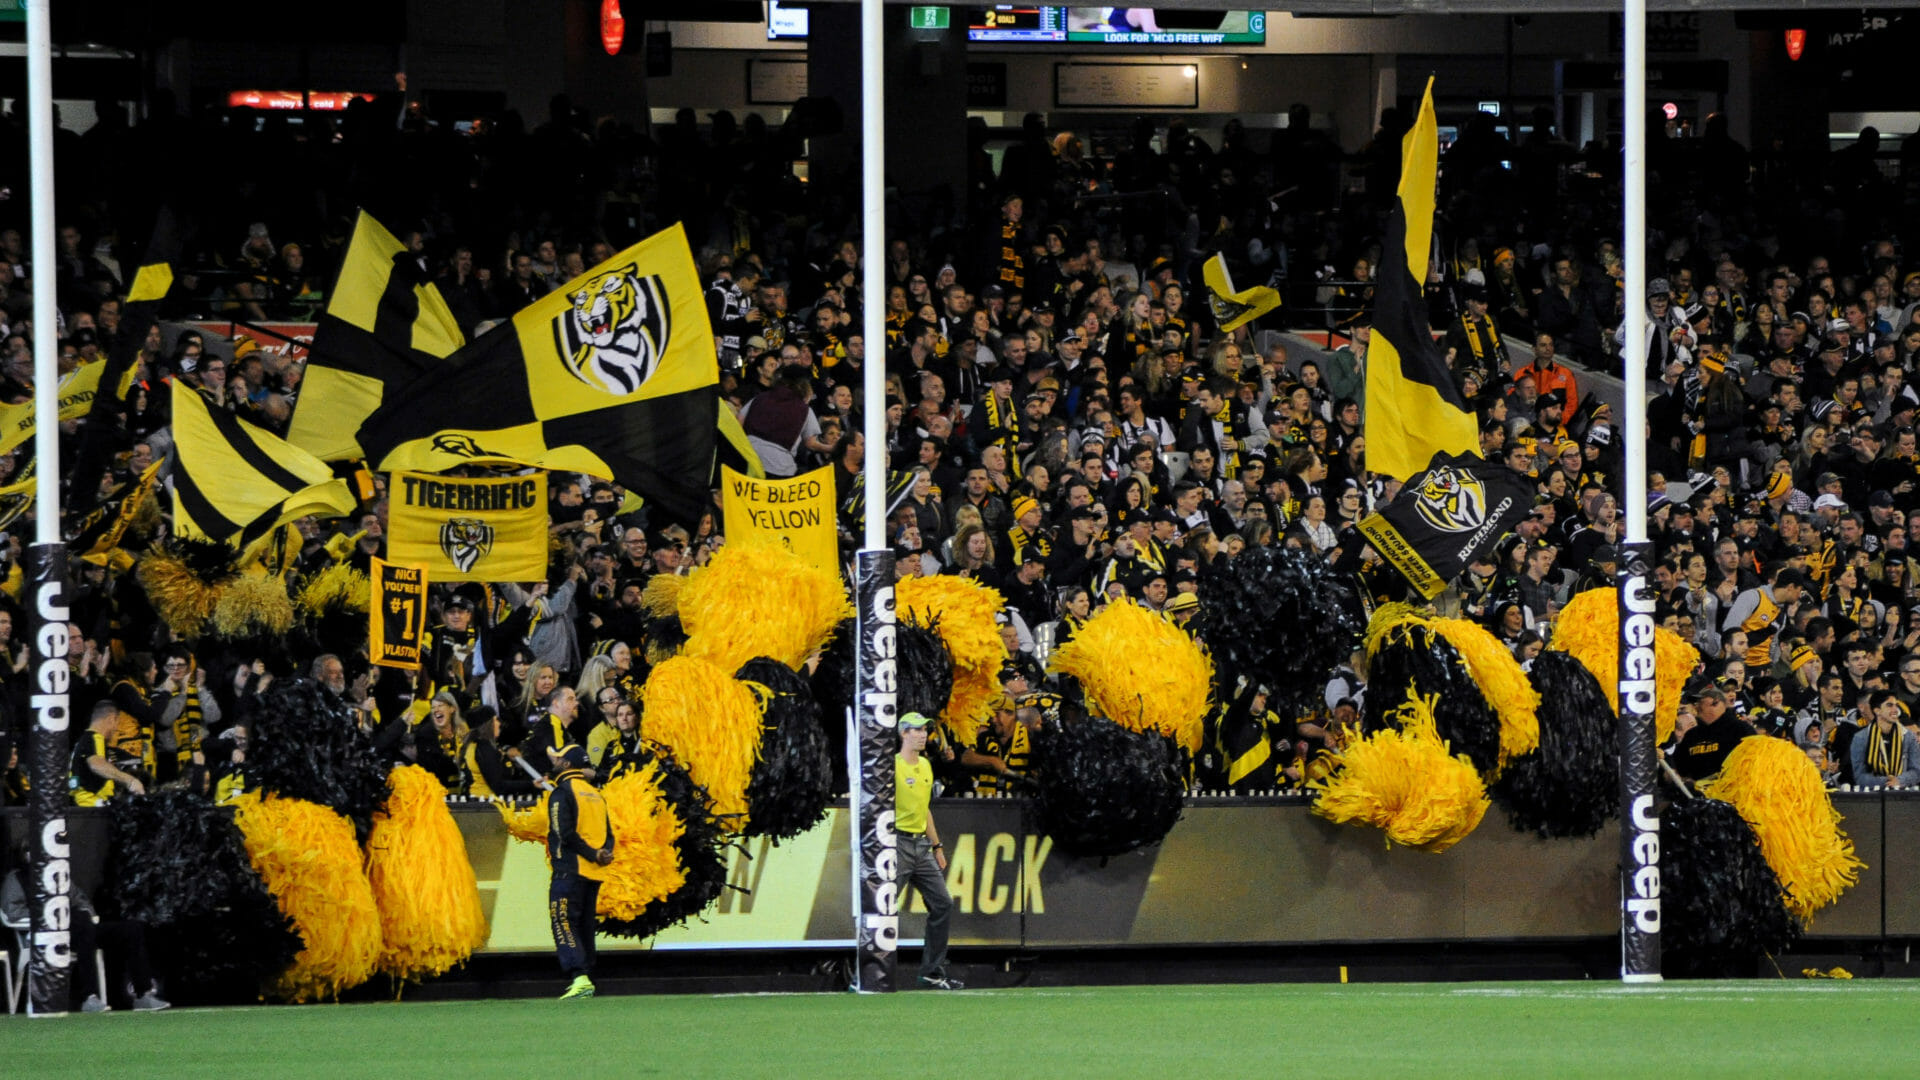 AFL fans of Richmond parked behind the goal posts of the Melbourne Cricket Ground waving yellow and black colours